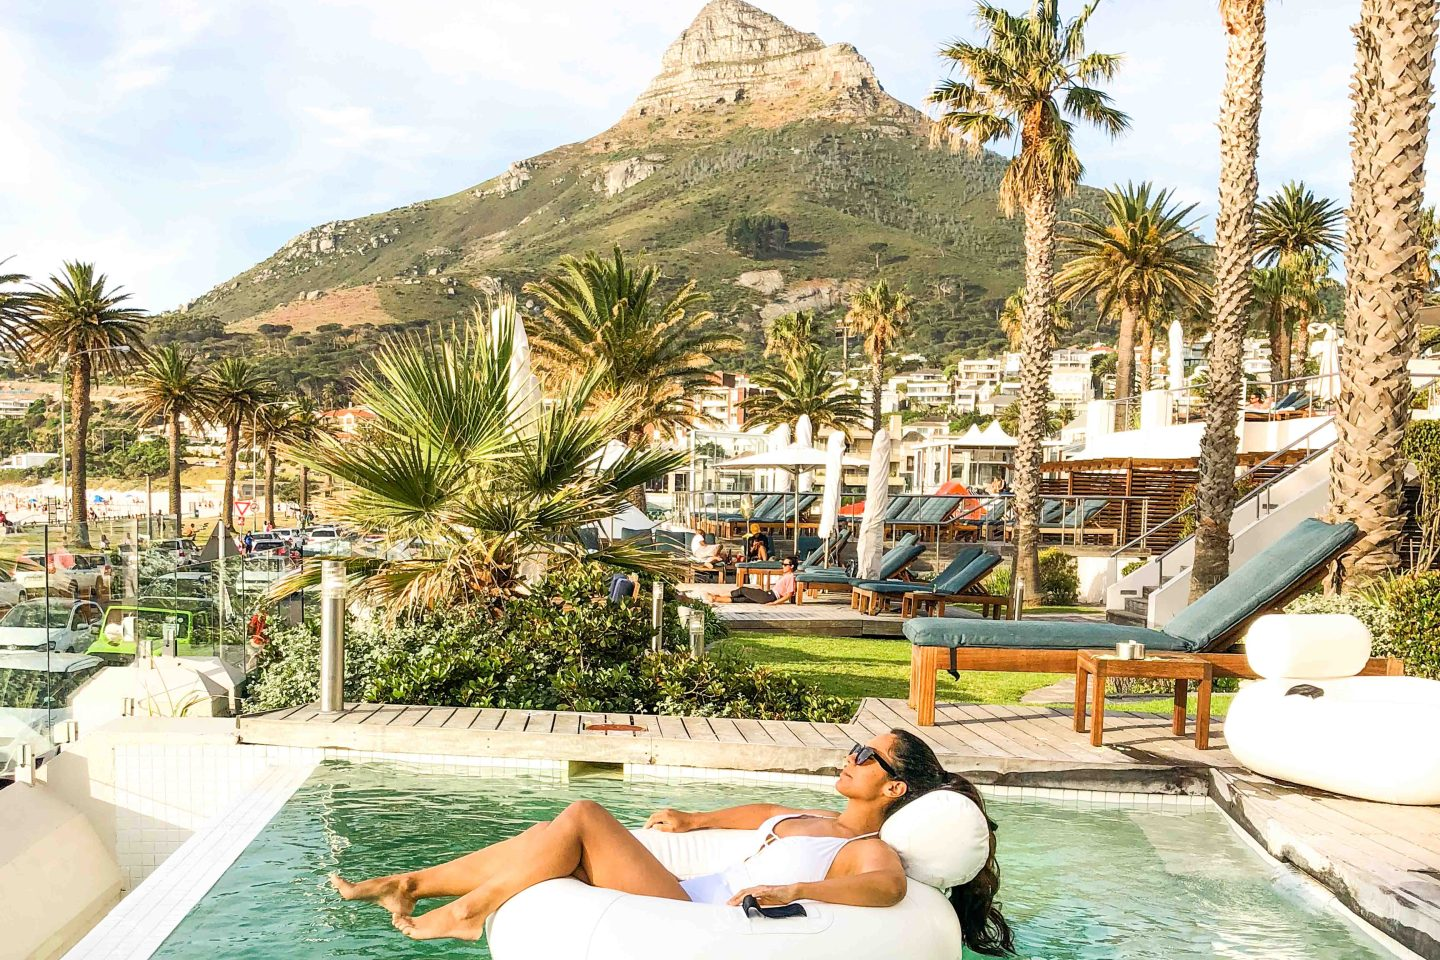 Bay Hotel - Cape town - south africa - pilar noriega - the lifetyle hunter